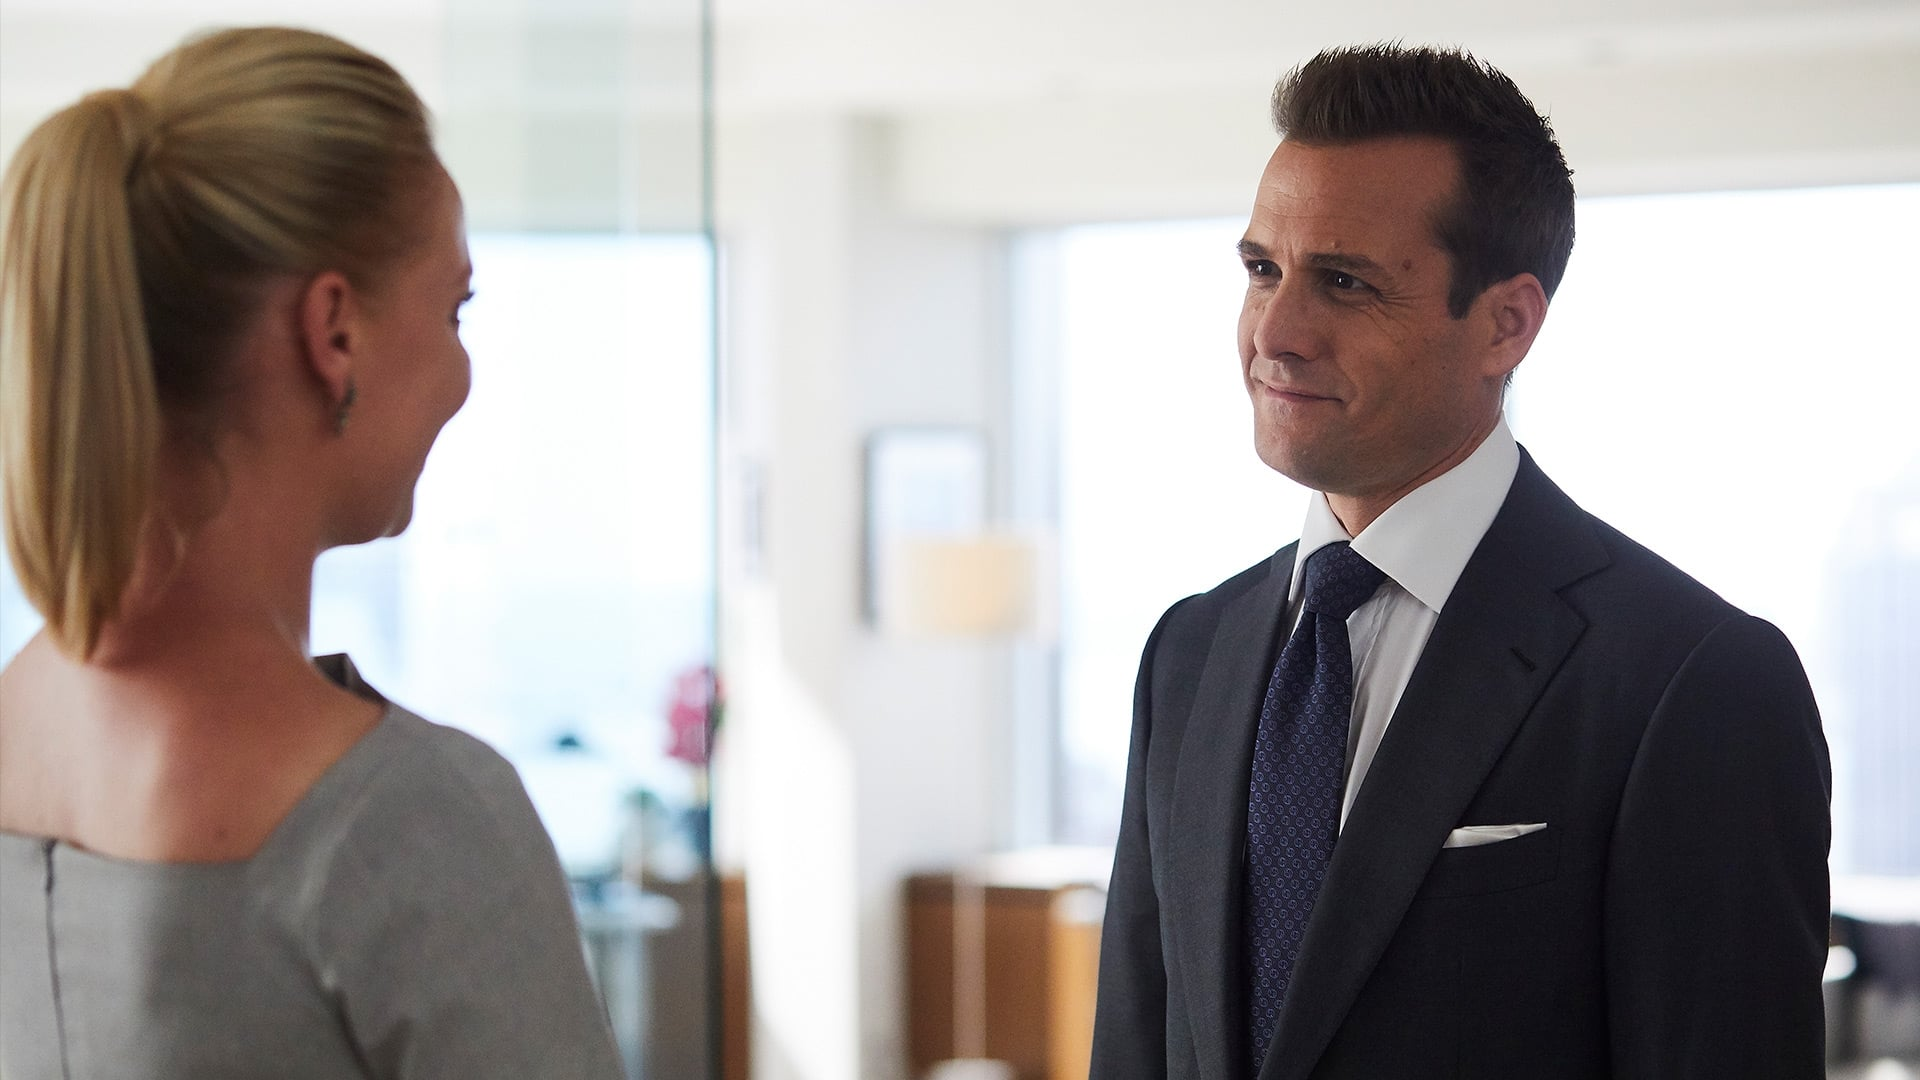 Suits - Season 8 Episode 8 : Coral Gables